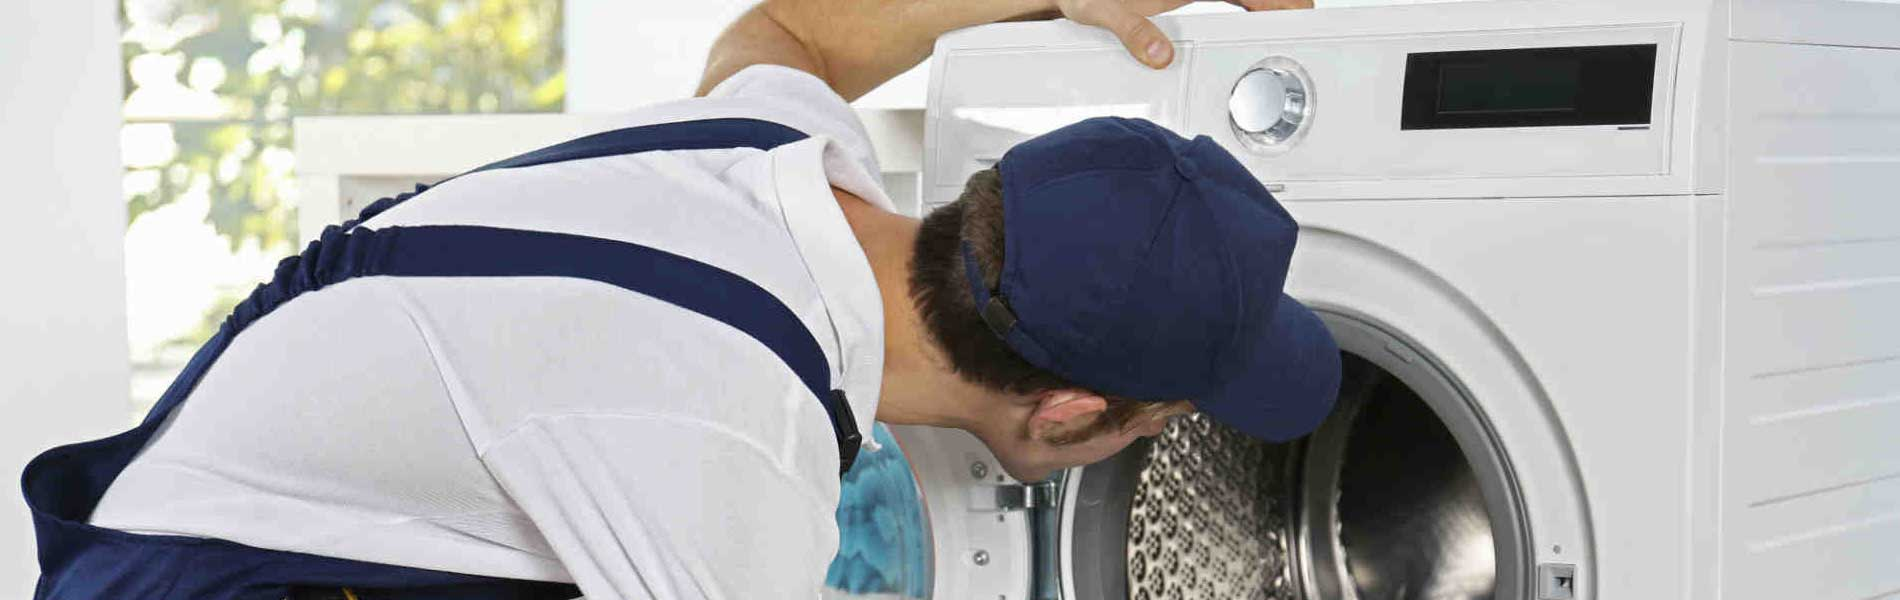 IFB Washing Machine Service in R.A Puram